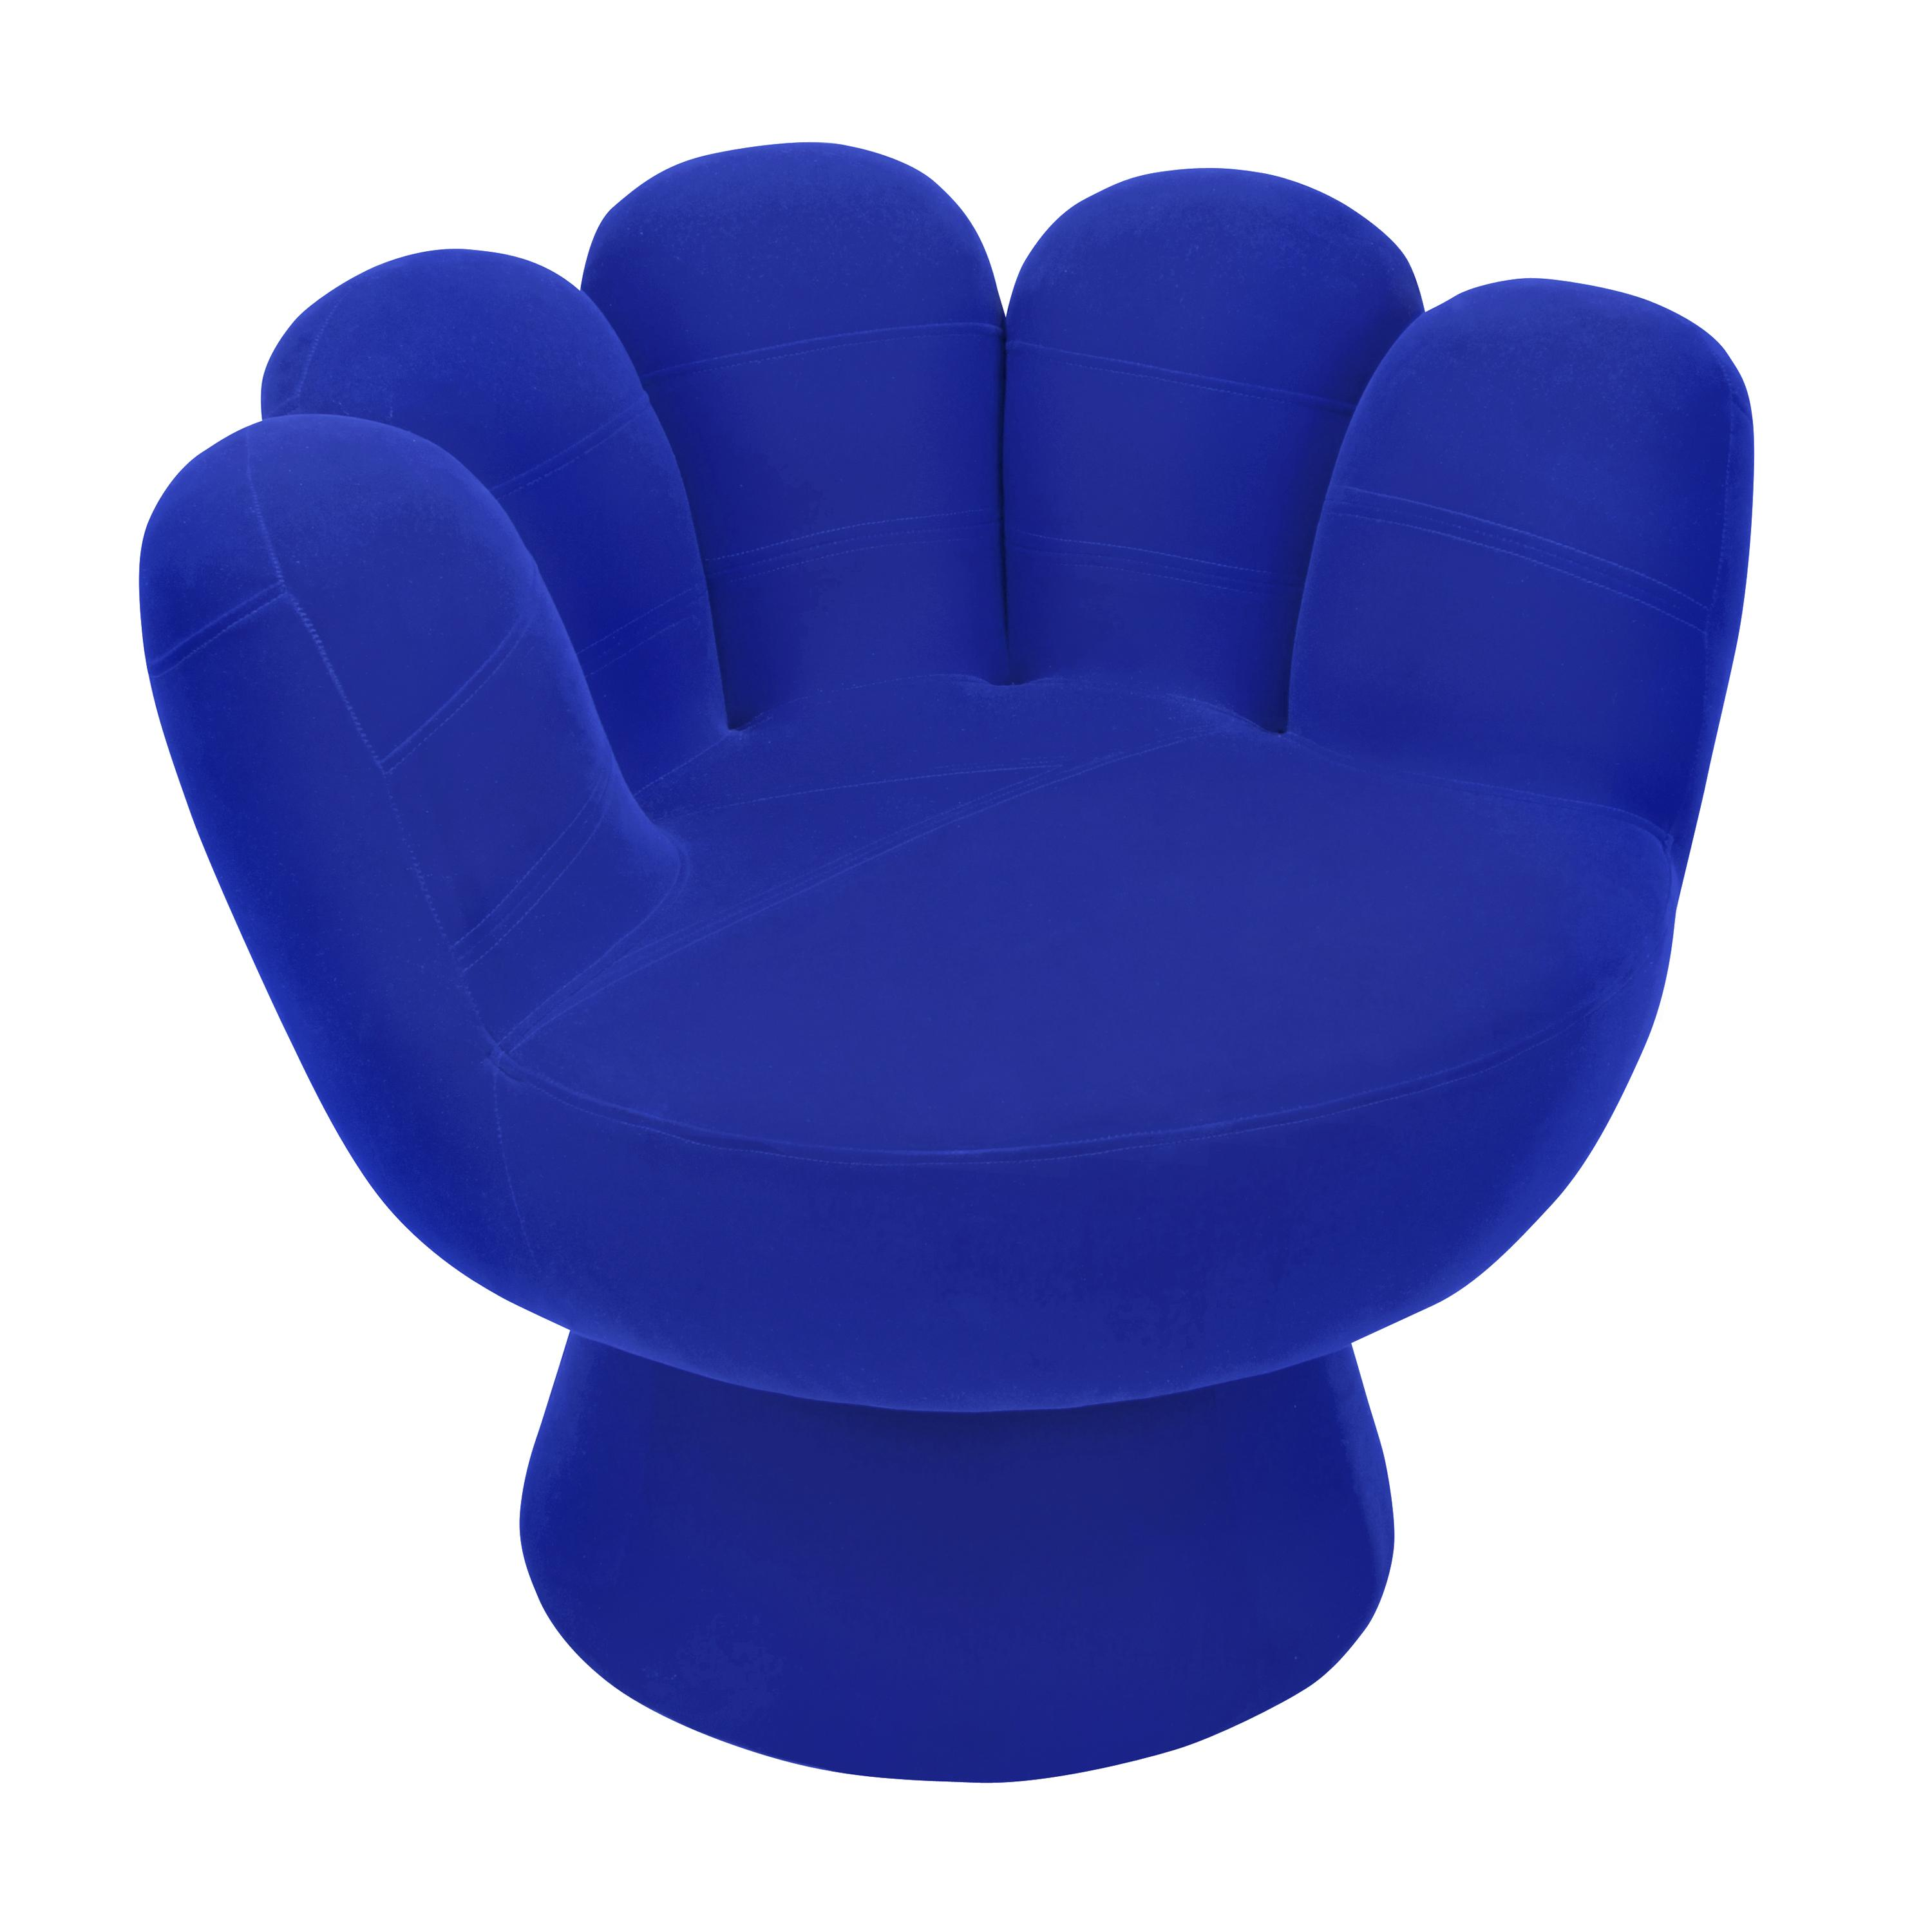 Lumisource Mitt Chair Blue Search Results  sc 1 st  InteriorDecorating.com & Mitt Chair Blue Lumisource